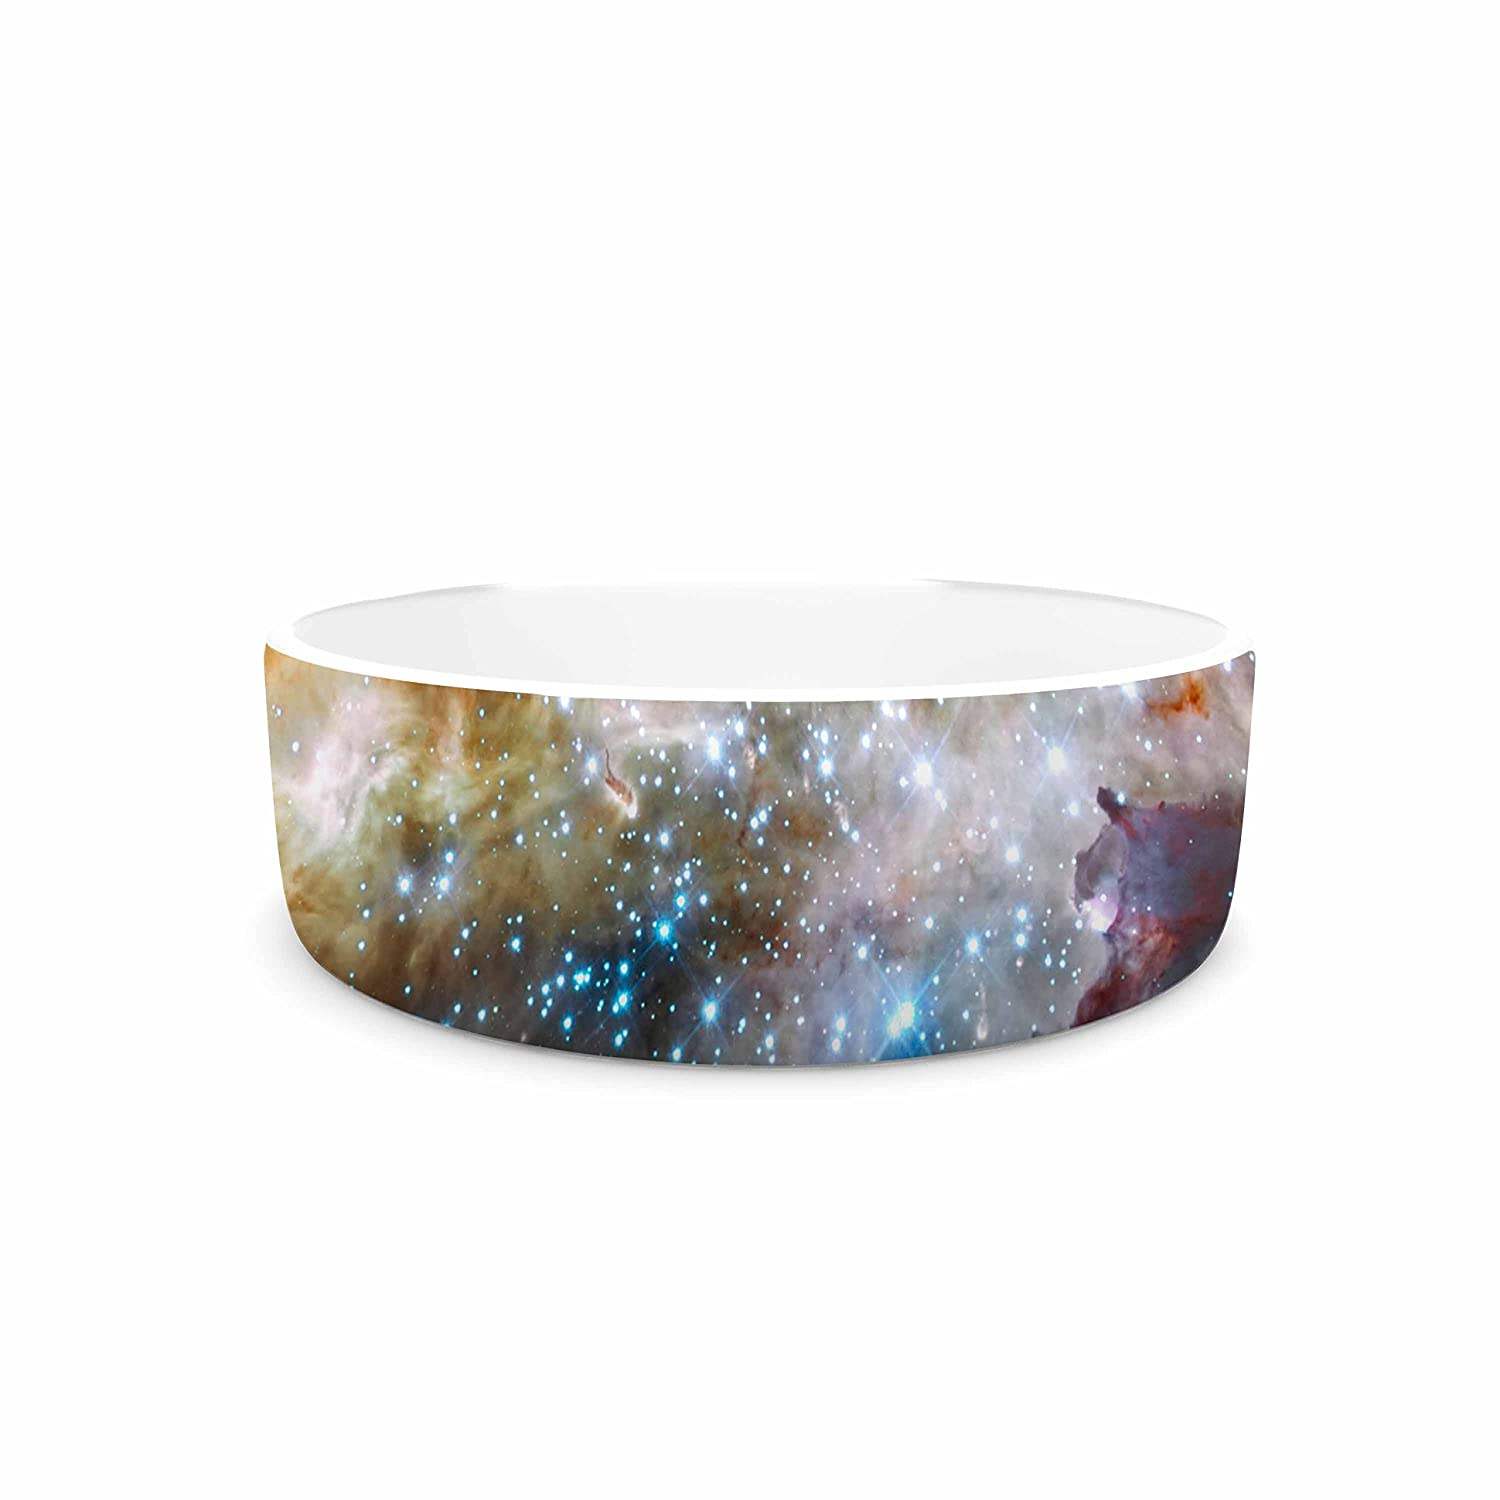 KESS InHouse Suzanne Carter Star Cluster  bluee Space Pet Bowl, 4.75